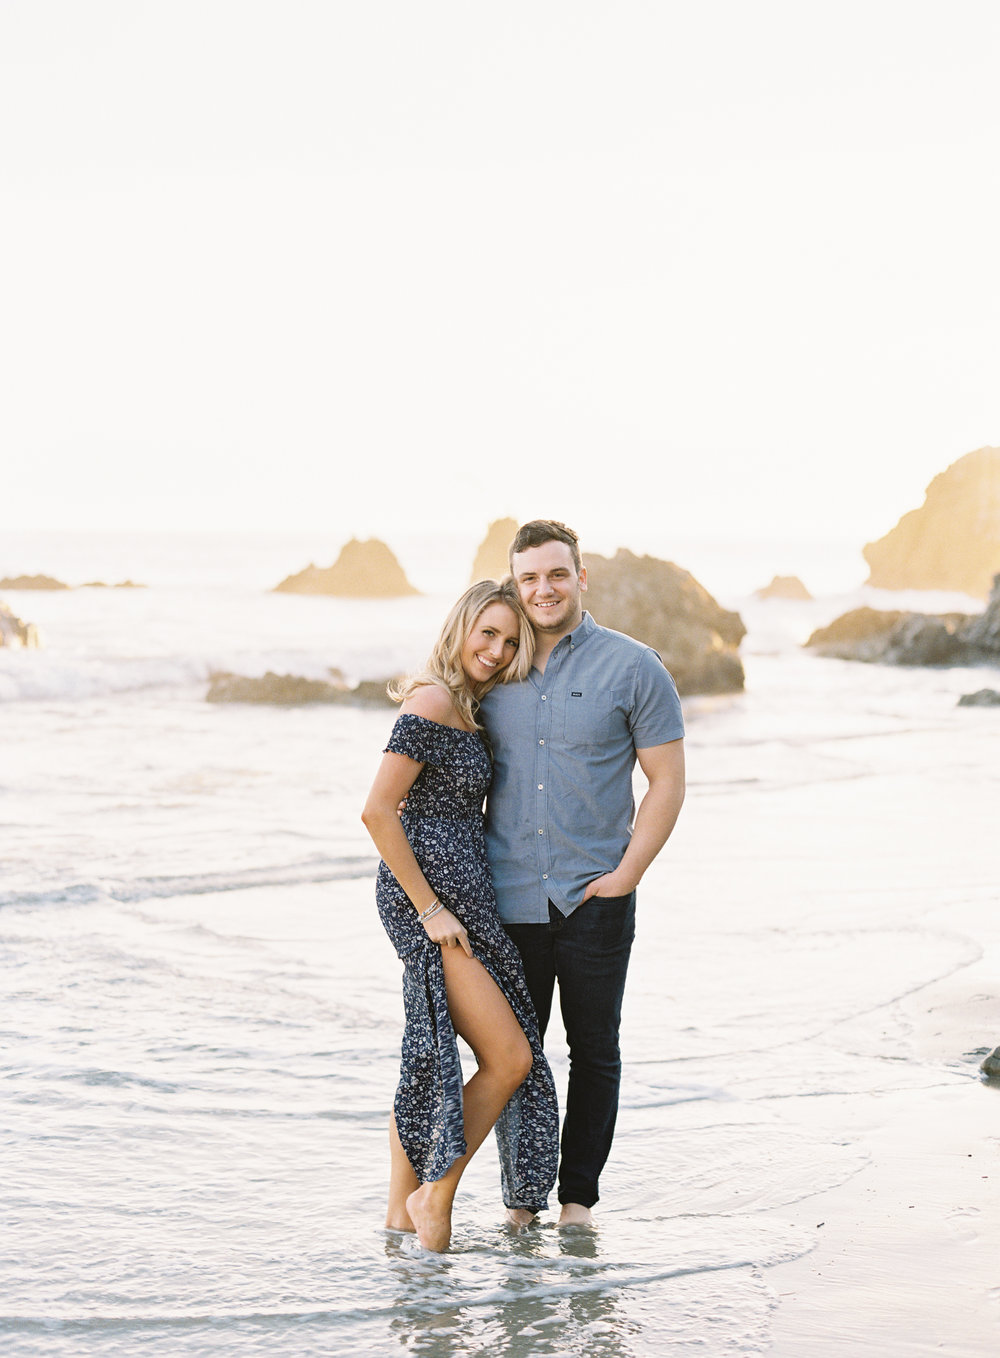 Taylor & Casey's Malibu Engagement-Carrie King Photographer-061.jpg